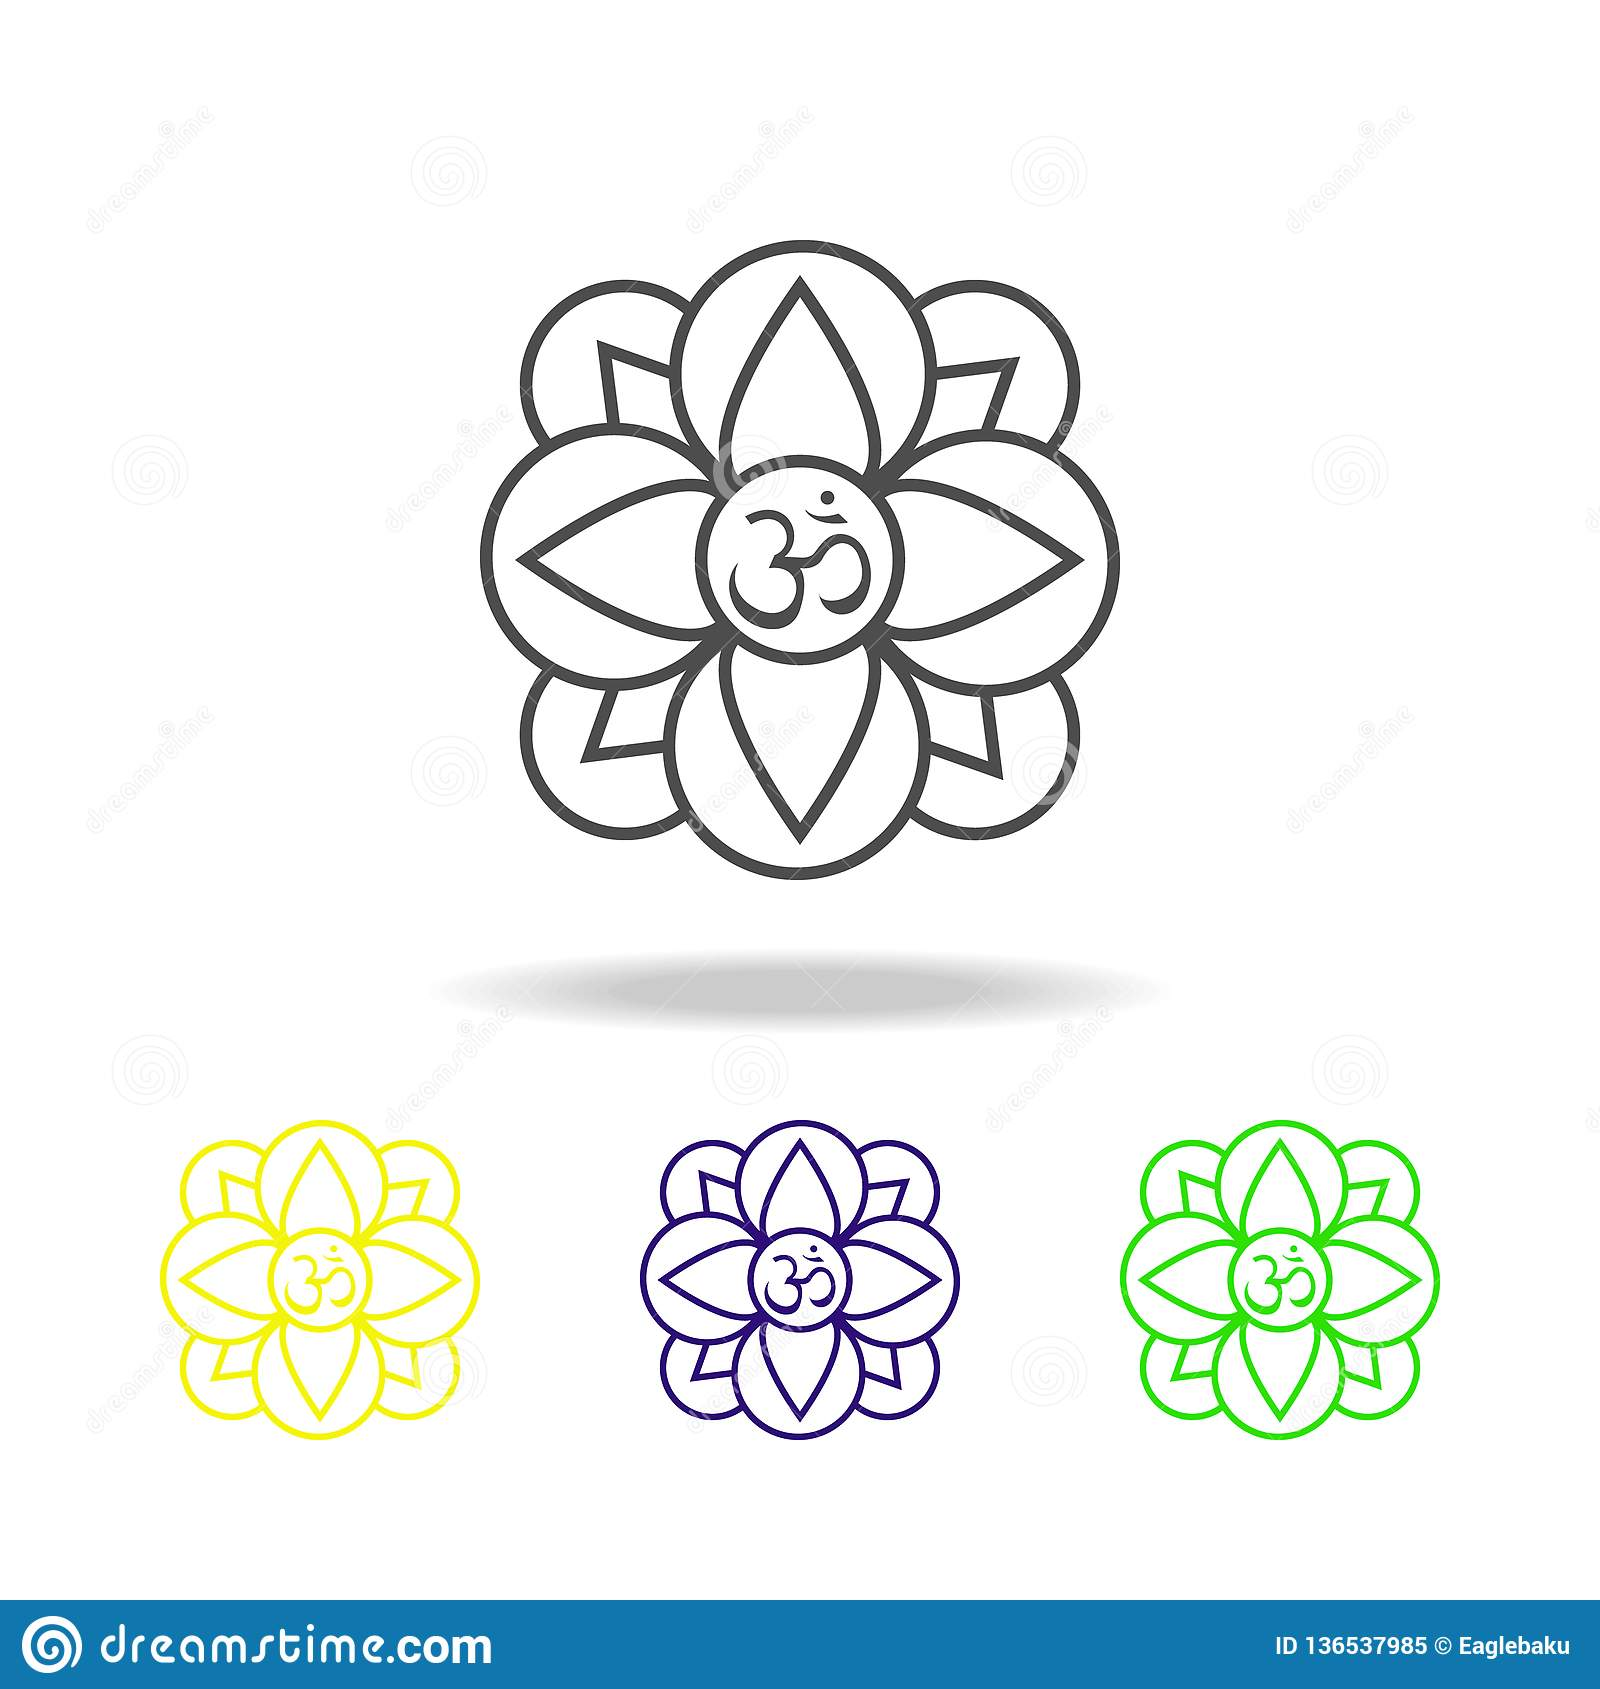 Diwali flower plant hinduism religion belief colored icons on white background. Diwali Hindu festival Indian Holidays elements for